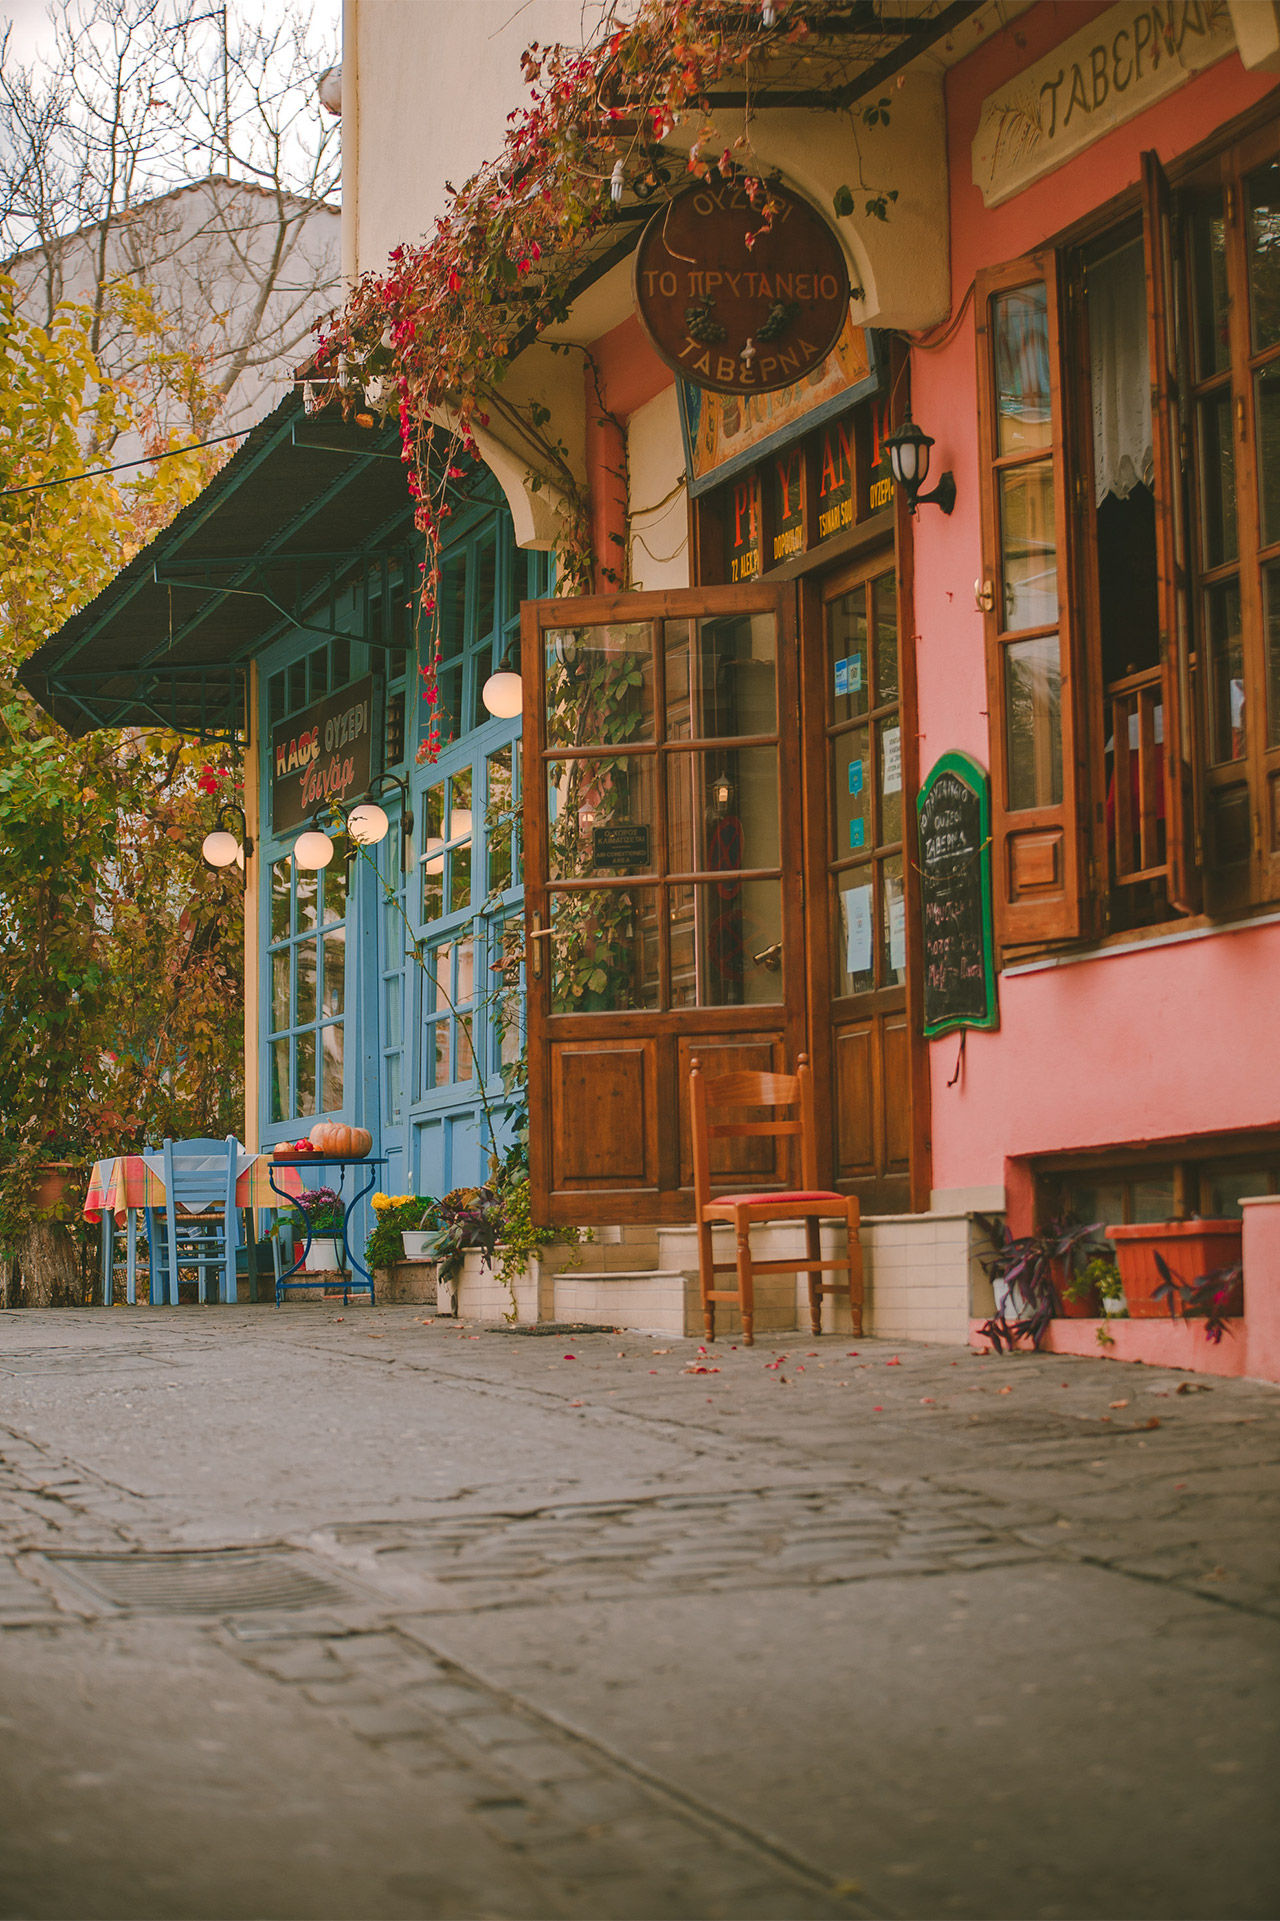 Taste all the delicacies in the traditional cafes and tavernas of the Tsinari neighbourhood